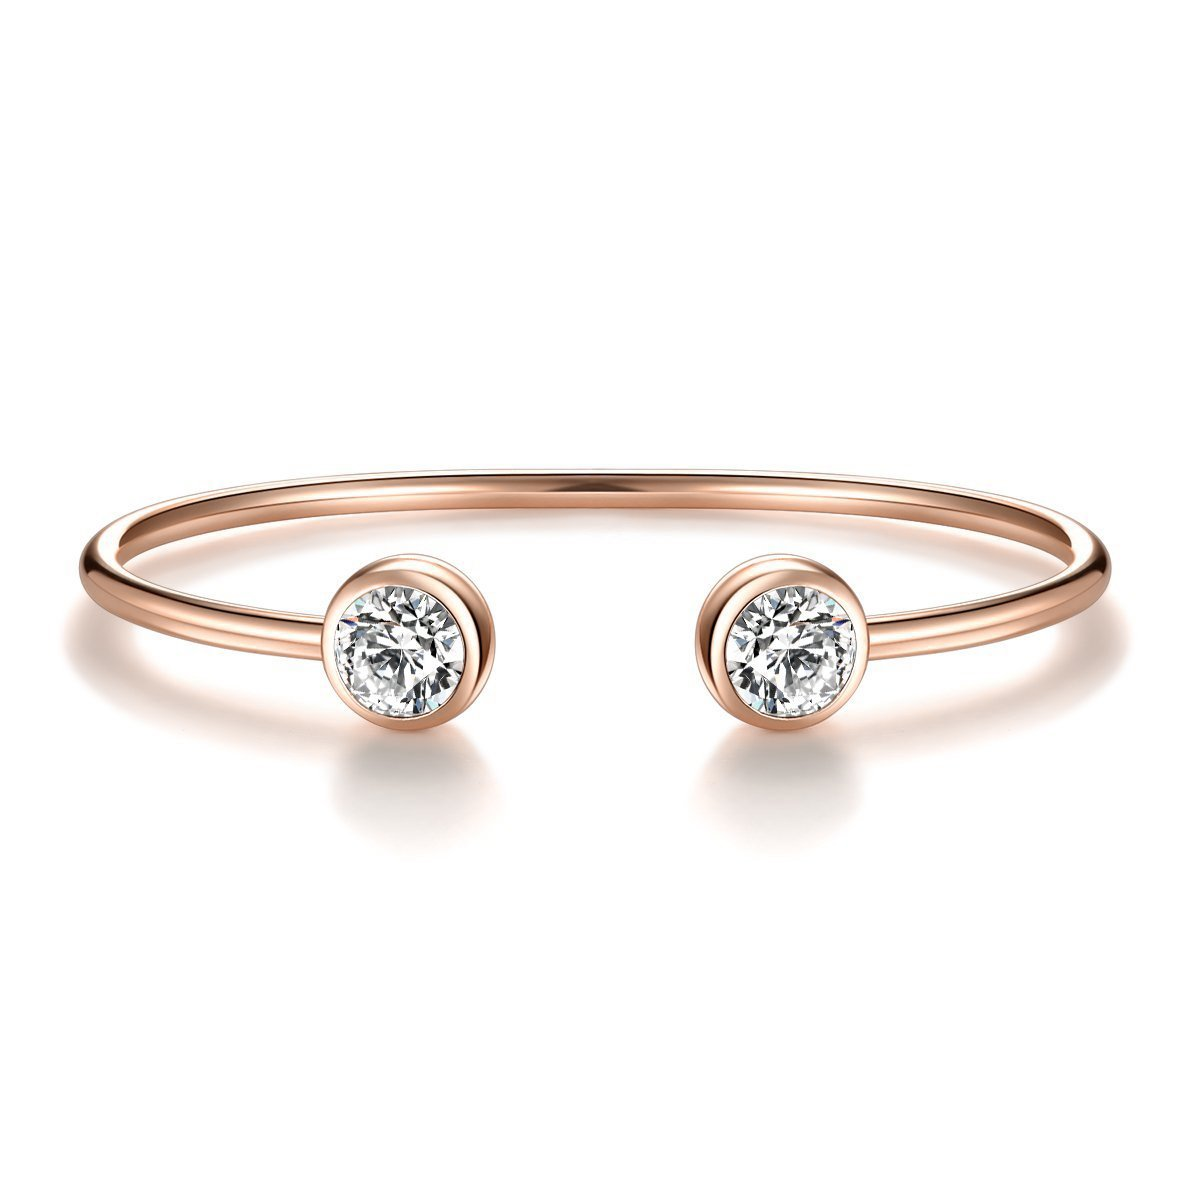 ISAACSONG.DESIGN Rose Gold Silver Tone Cuff Bangle Bracelet Zirconia Crystal Stone Jewelry for Women (Rose Gold)